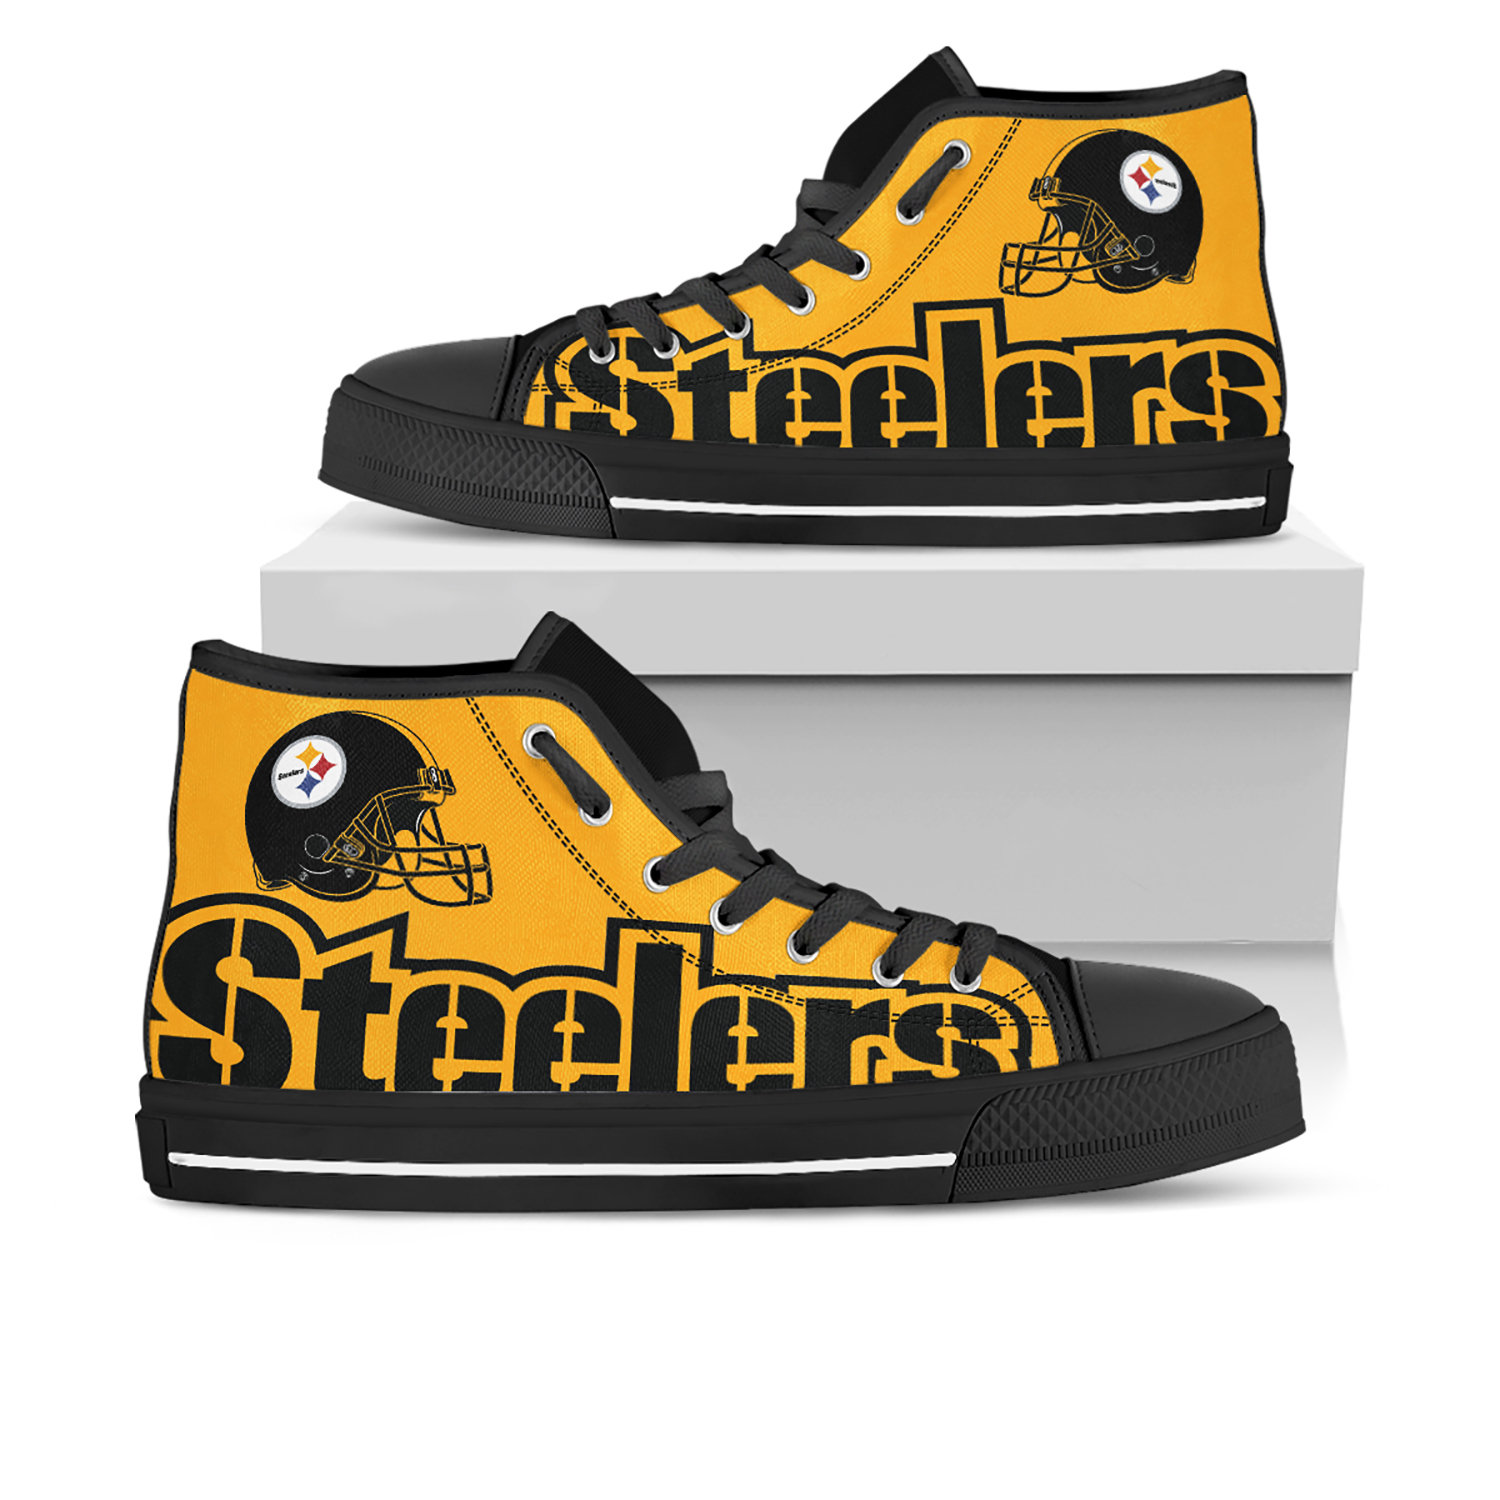 d6fc9b59 Pittsburgh Steelers Custom White Shoes/Sneakers/Trainers - Ladies/Kids  Sizes, Custom Shoes, Gift for Her, Gift For Men, Birthday Gift, Gift For  Wife